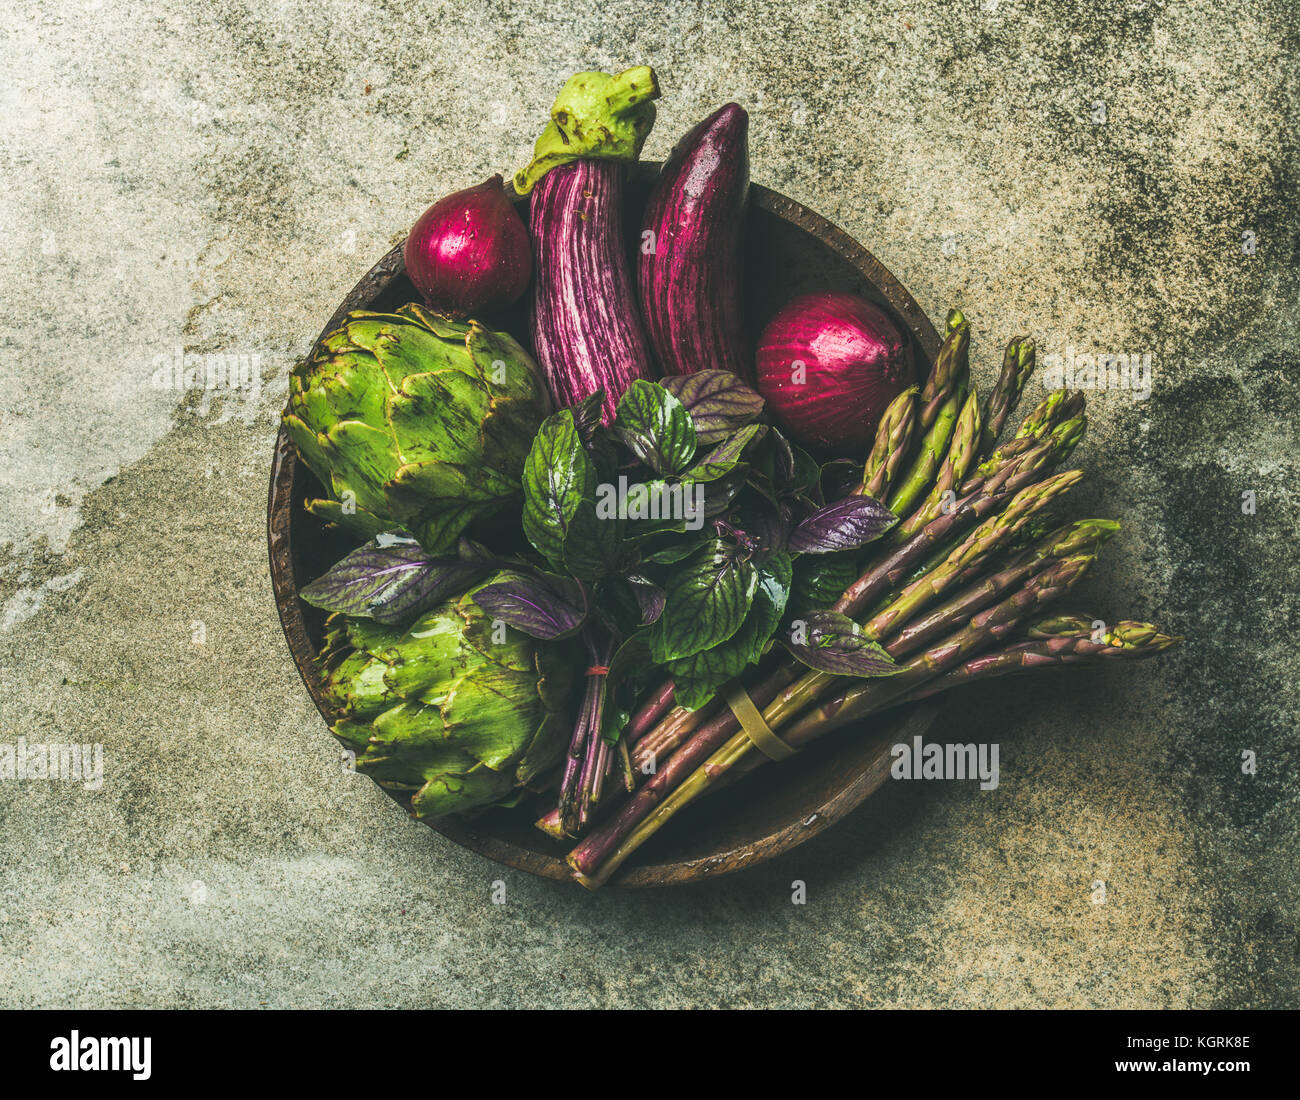 Flat-lay of green and purple vegetables on plate over grey background, top view. Local produce for healthy cooking. - Stock Image